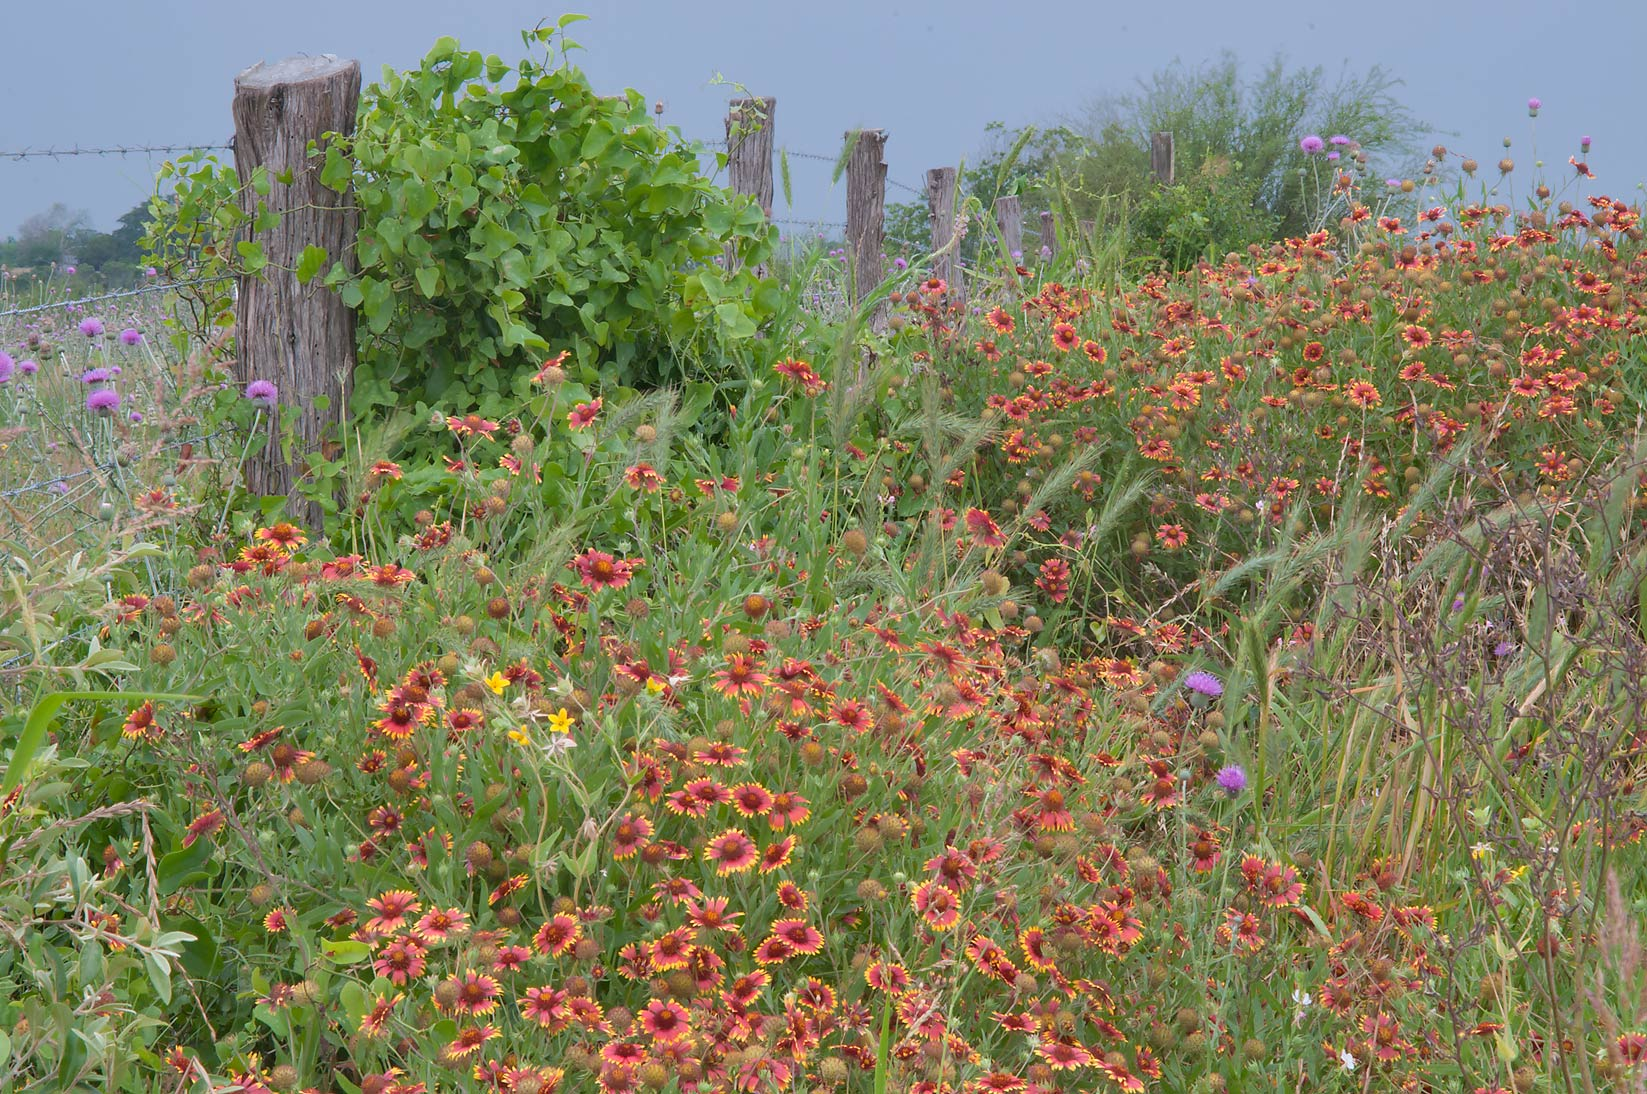 Flowers around a fence near Rd. FM 390 south from Lake Somerville. Texas